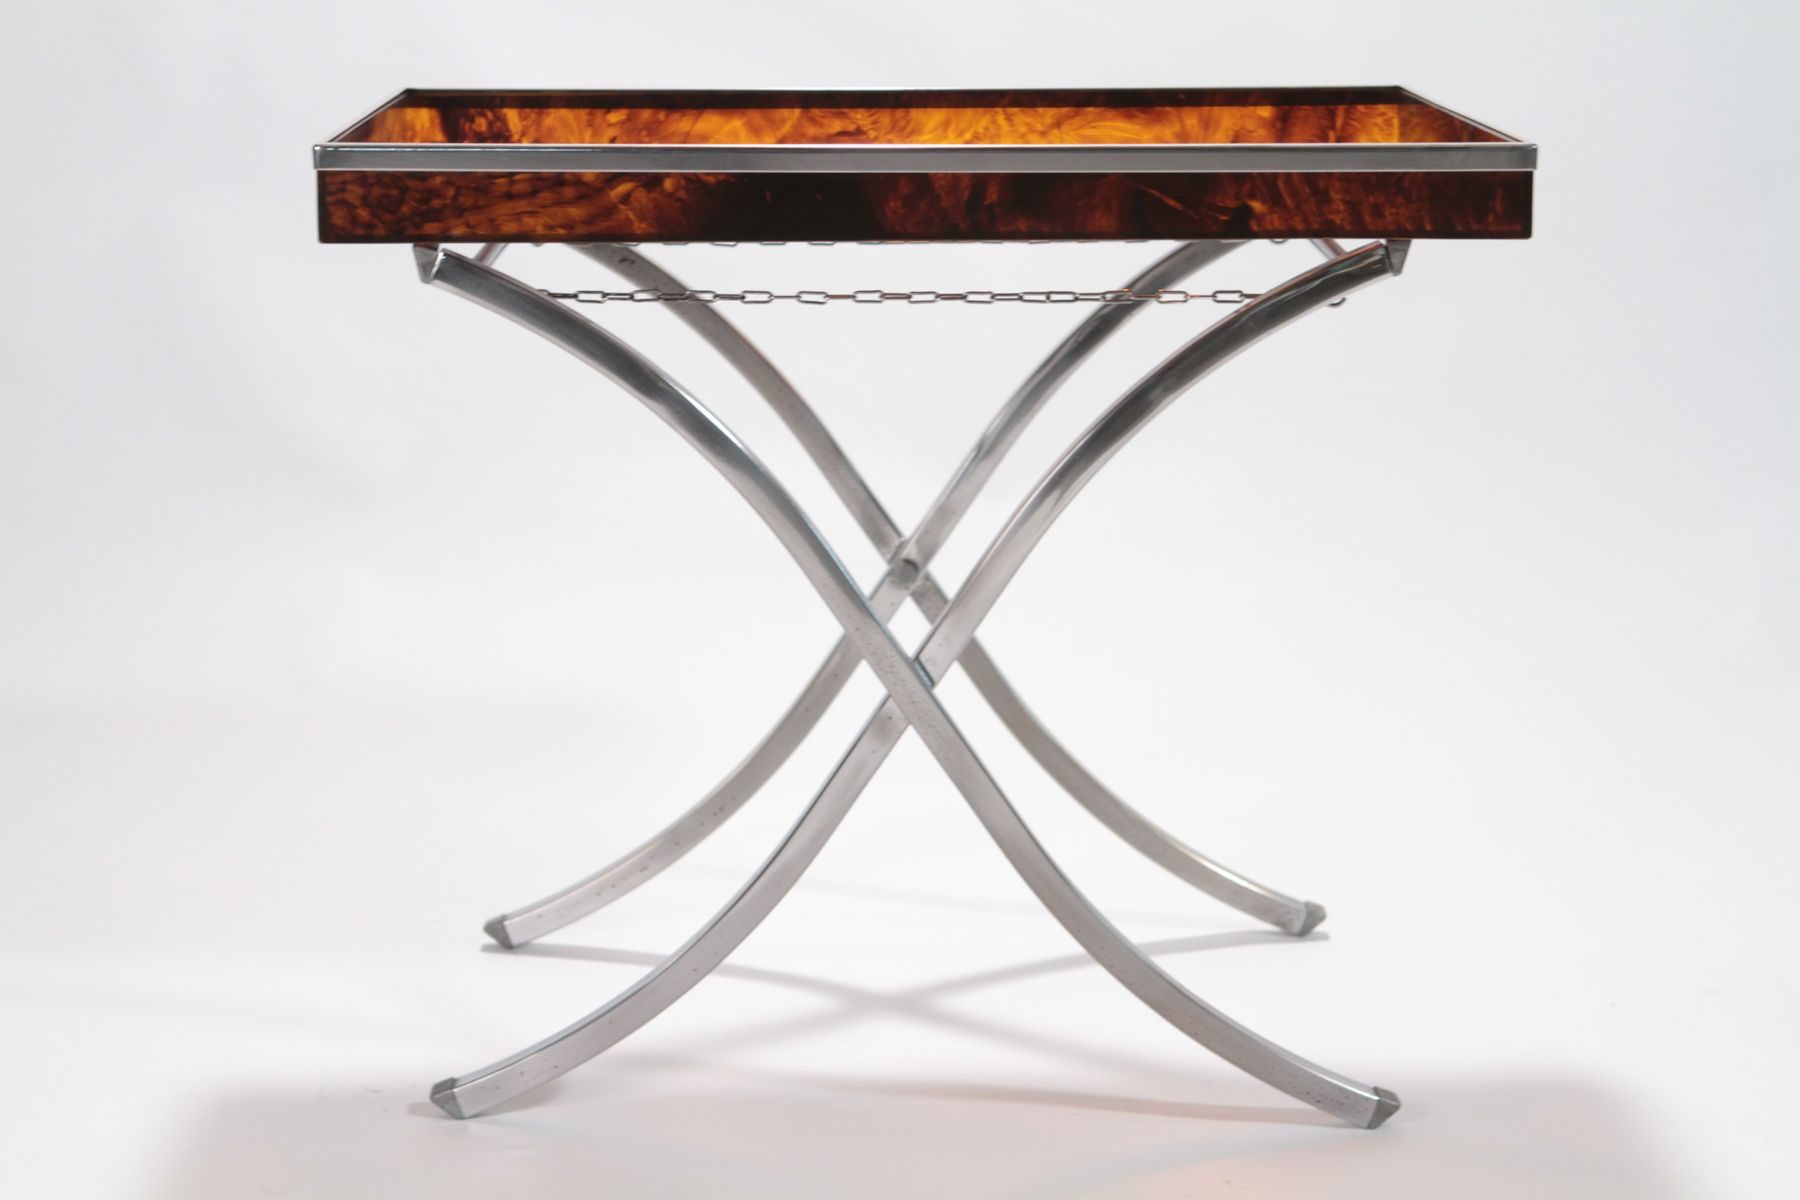 Awesome Butleru0027s Tray Table, 1970s